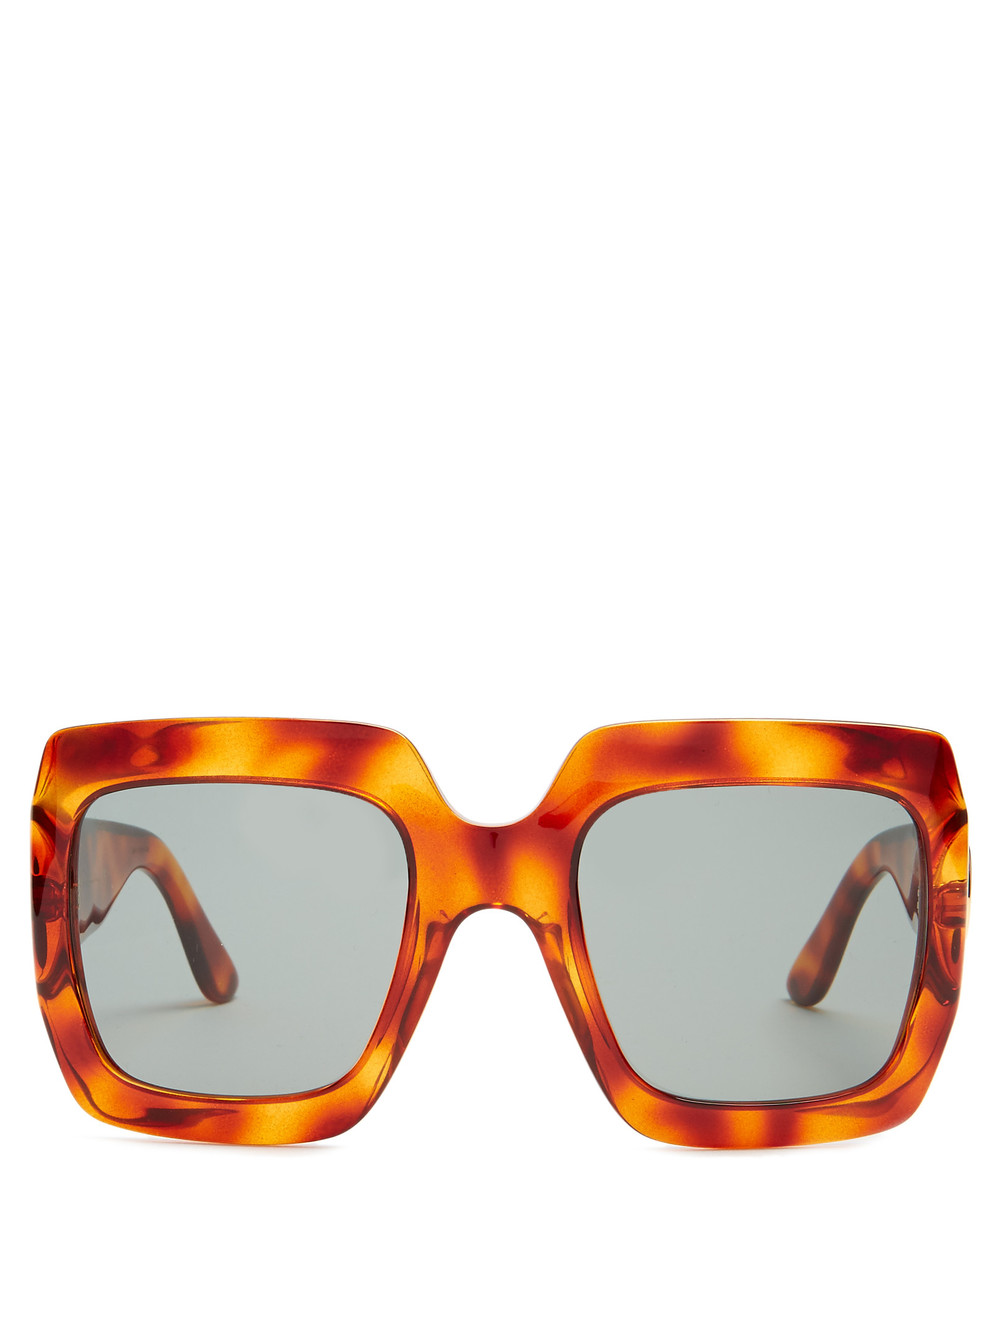 HBK Luxury Italian Brand Oversized Sun Glass Square